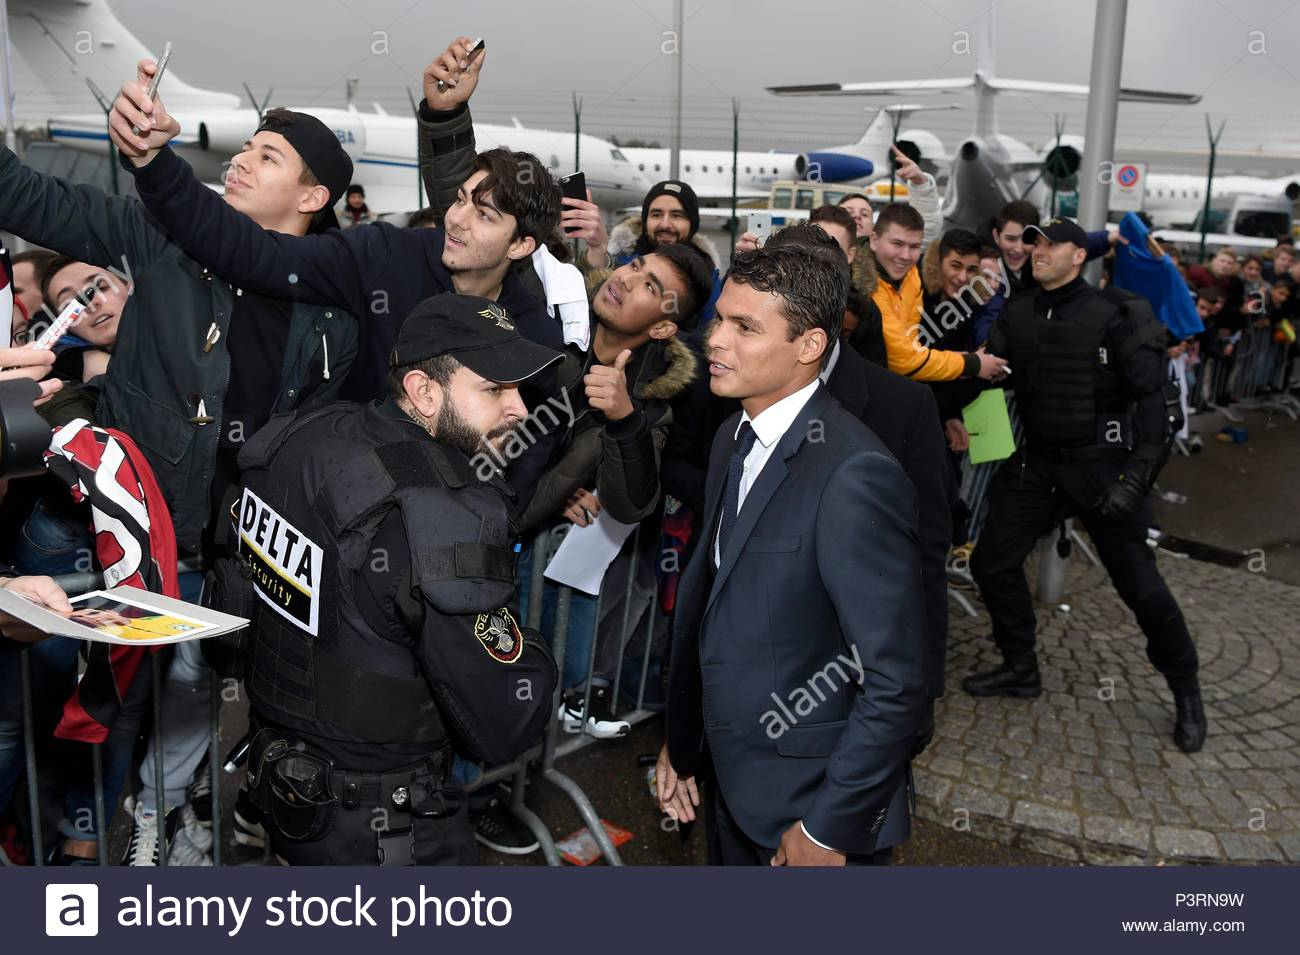 Thiago Silva. 11JAN2016 Soccer stars arriving at Zurich airport for the FIFA Ballon d'Or Gala 2015 at the Kongresshalle in Zurich. - Stock Image